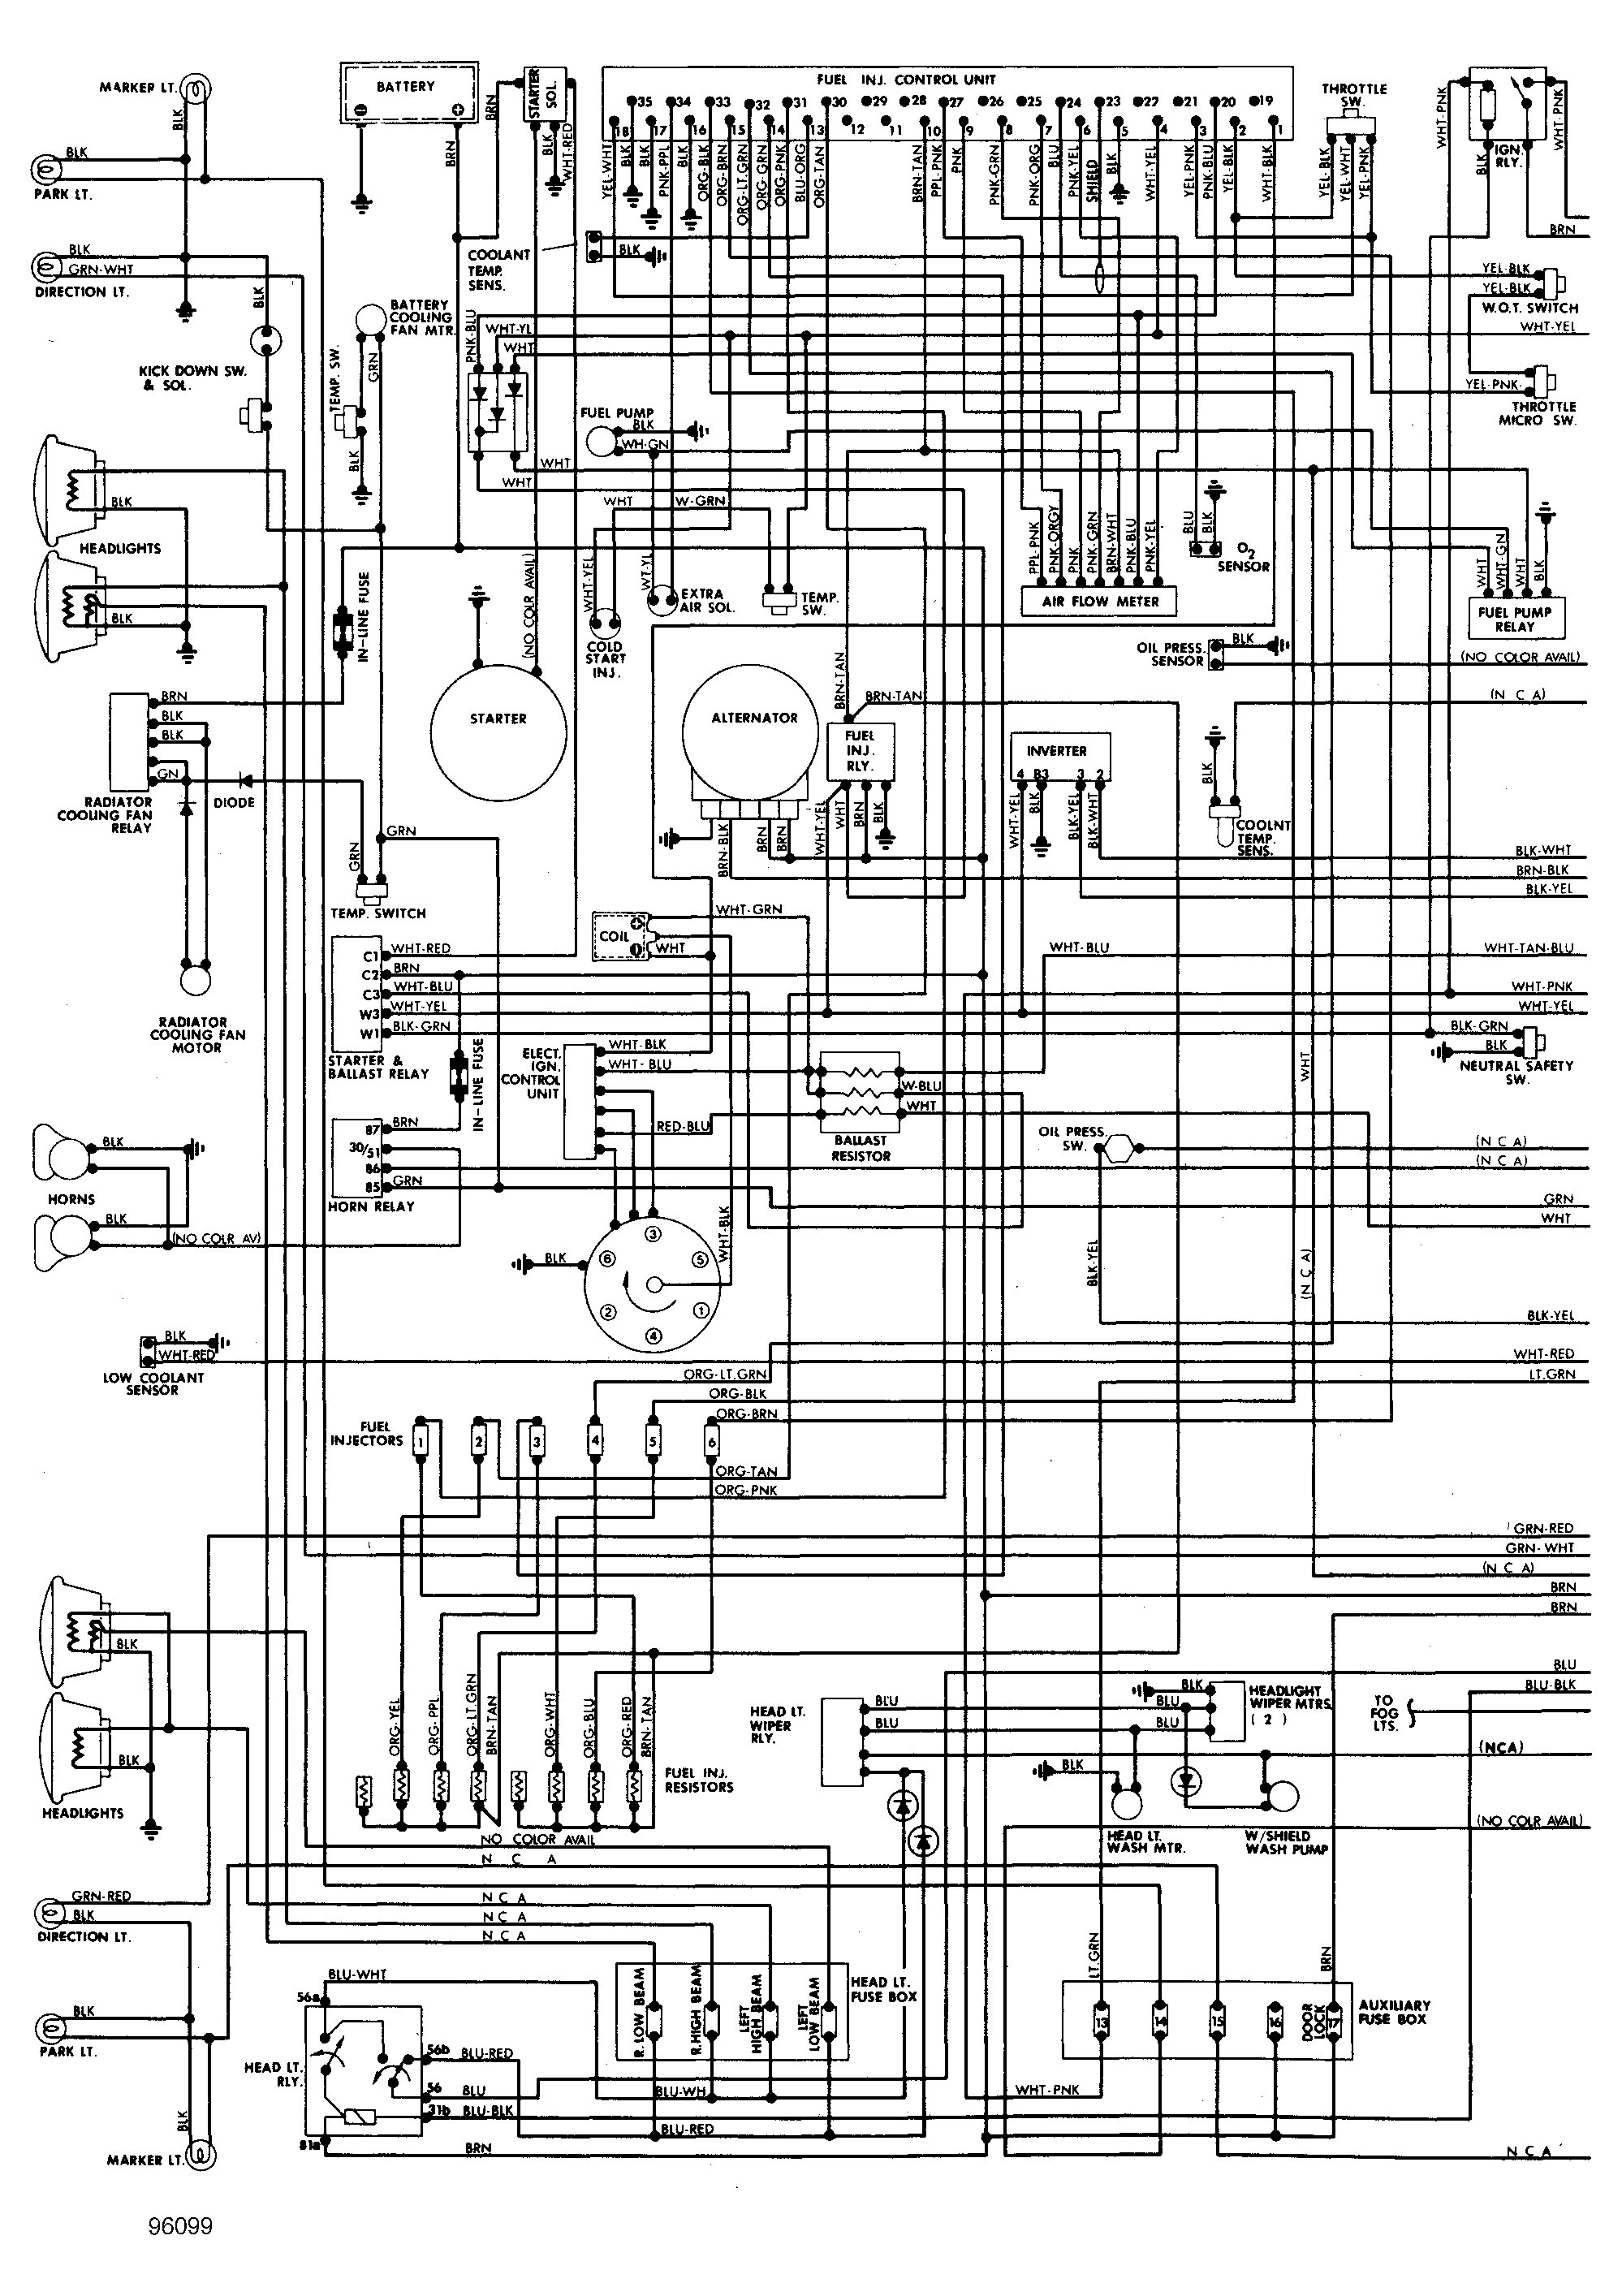 1998 Mercury Grand Marqui Wiring Diagram